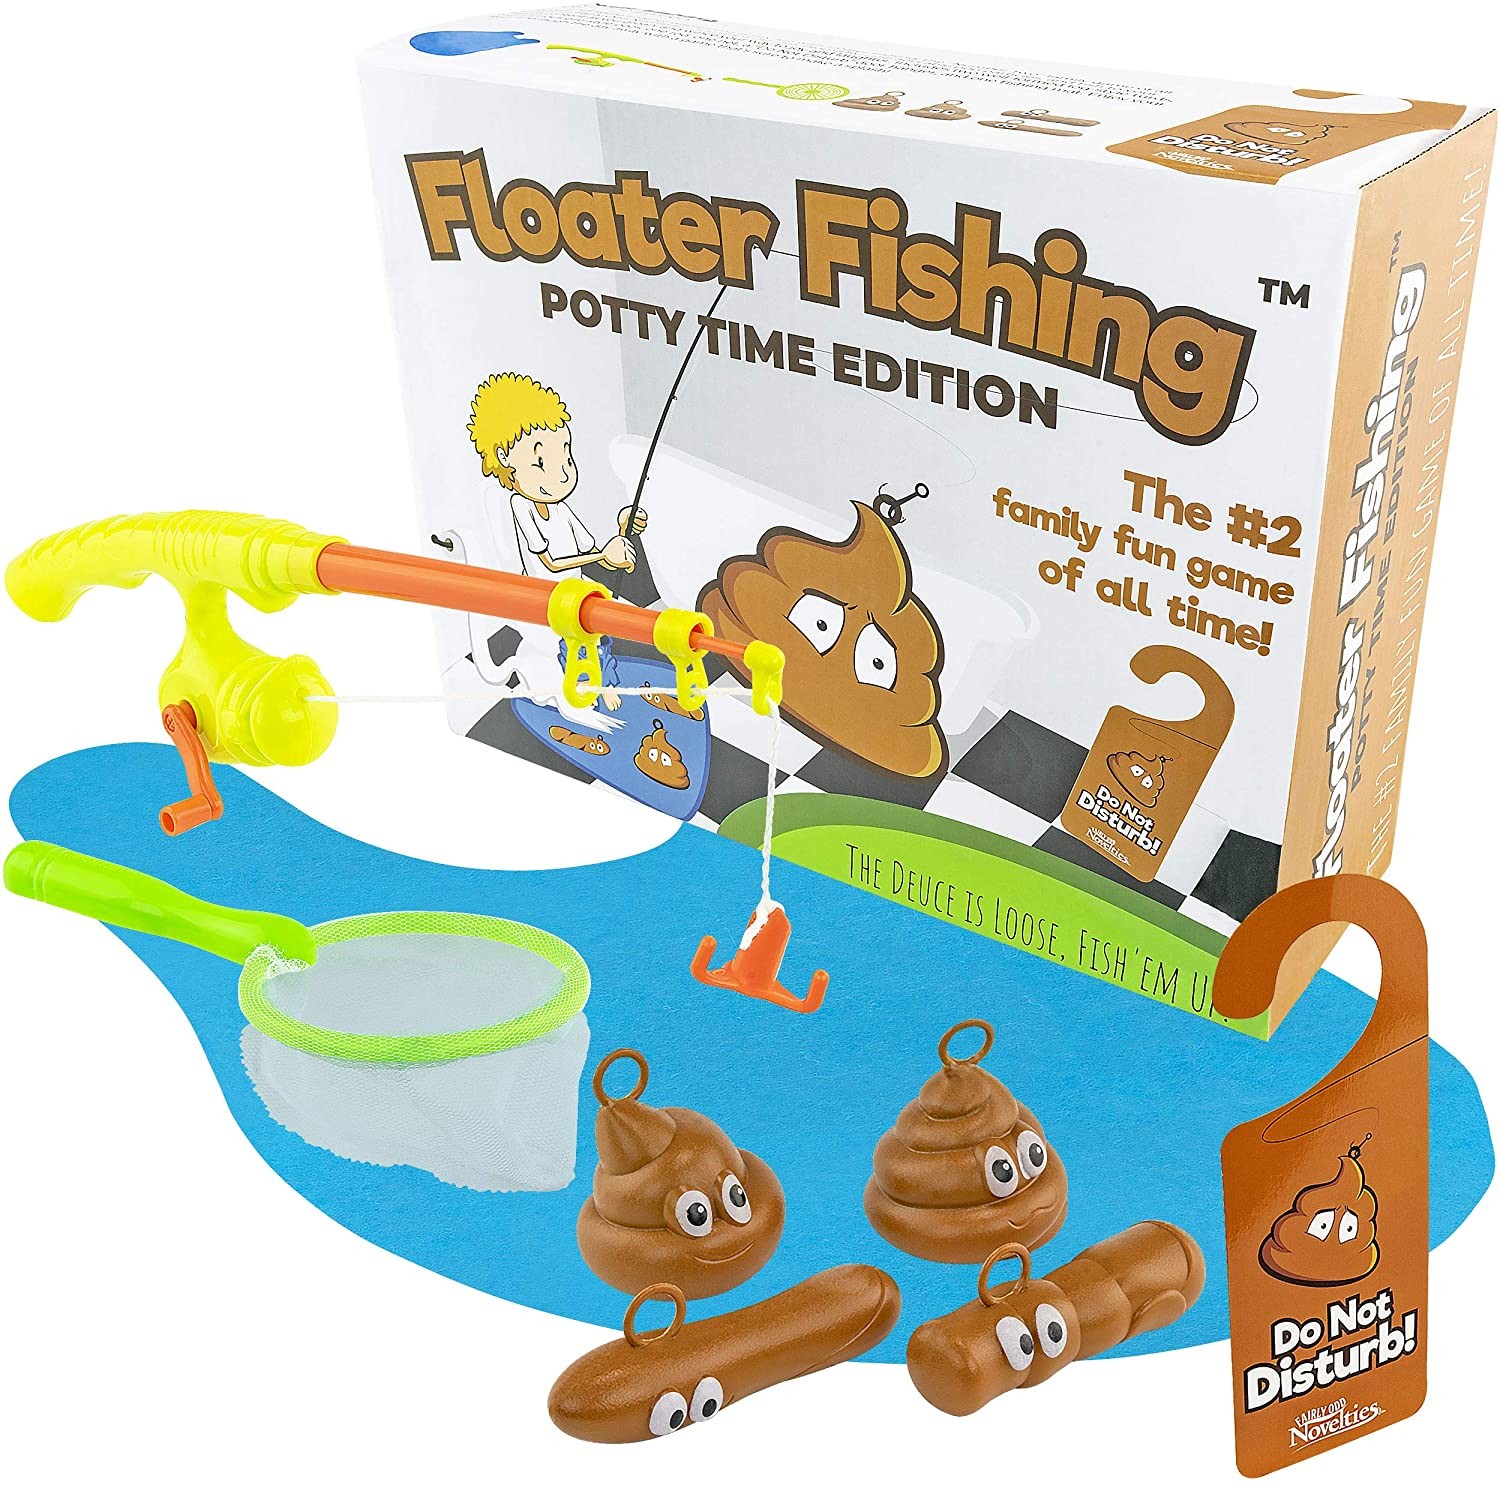 Fairly Odd Novelties Fishing for FLOATERS Potty TIME Edition! Poop Fishing  Games Poop Gag Gifts Poop Emoji Poop Toys Floater Fishing Funny Poop